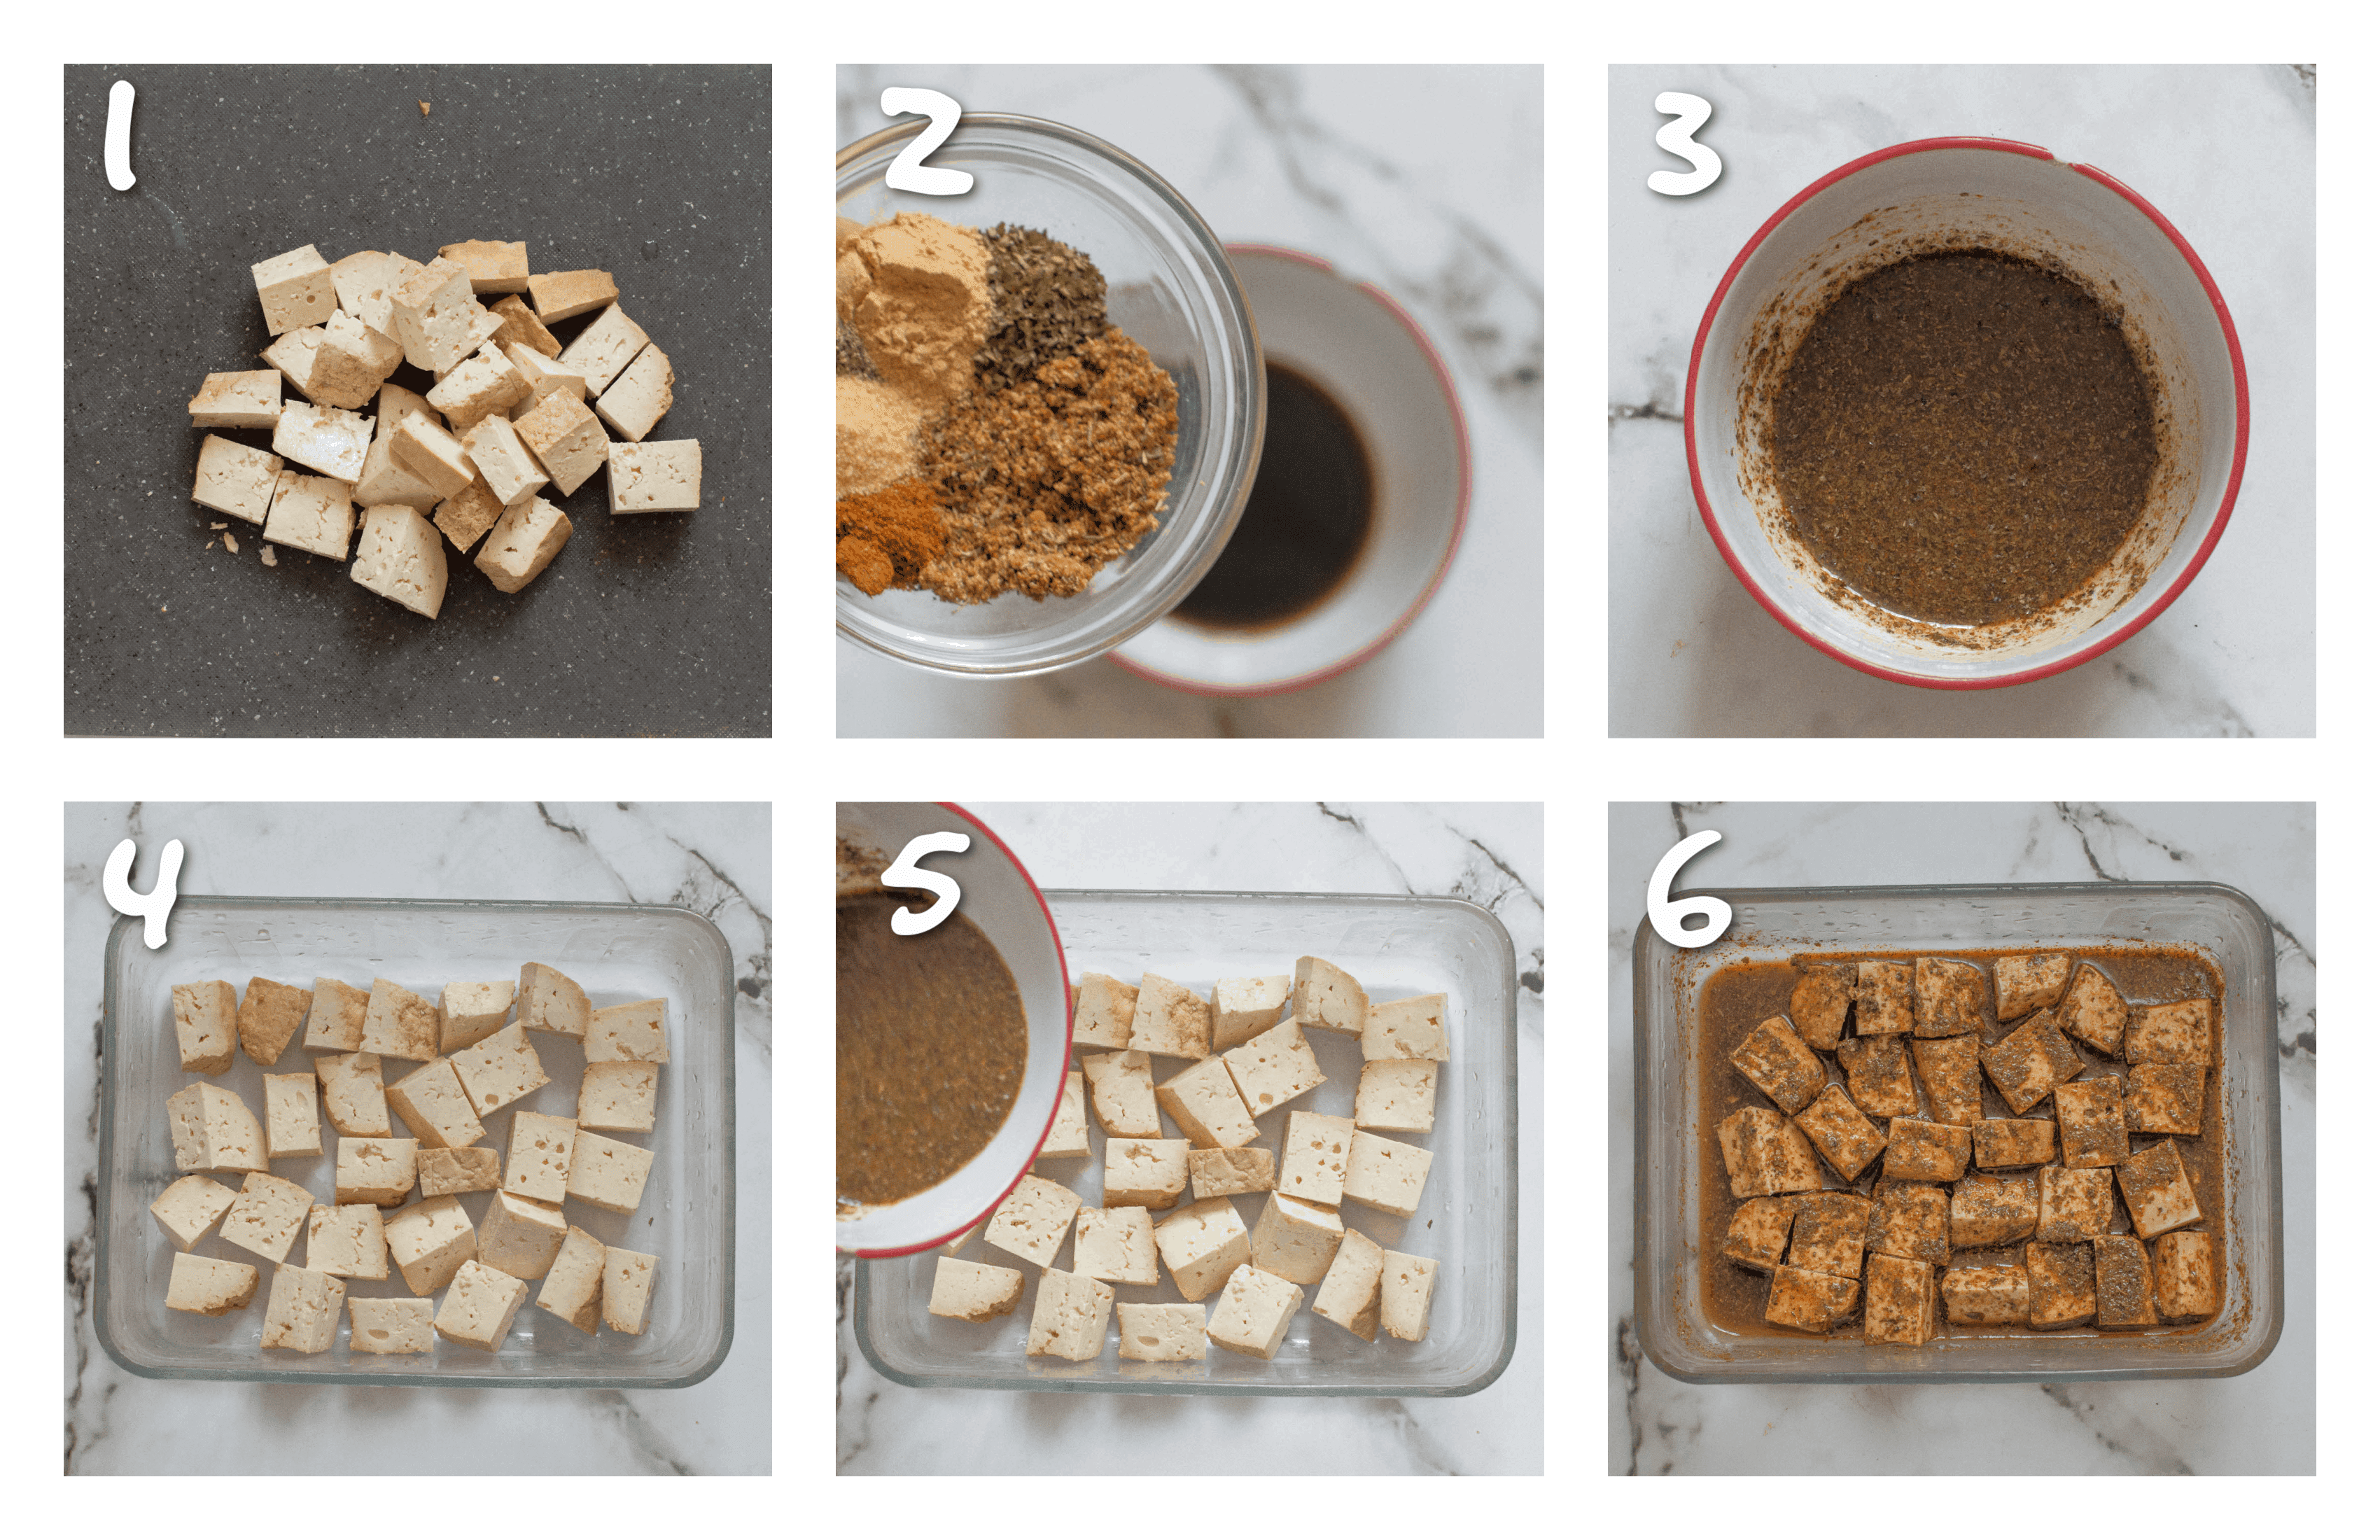 steps1-6 marinating and cooking the tofu